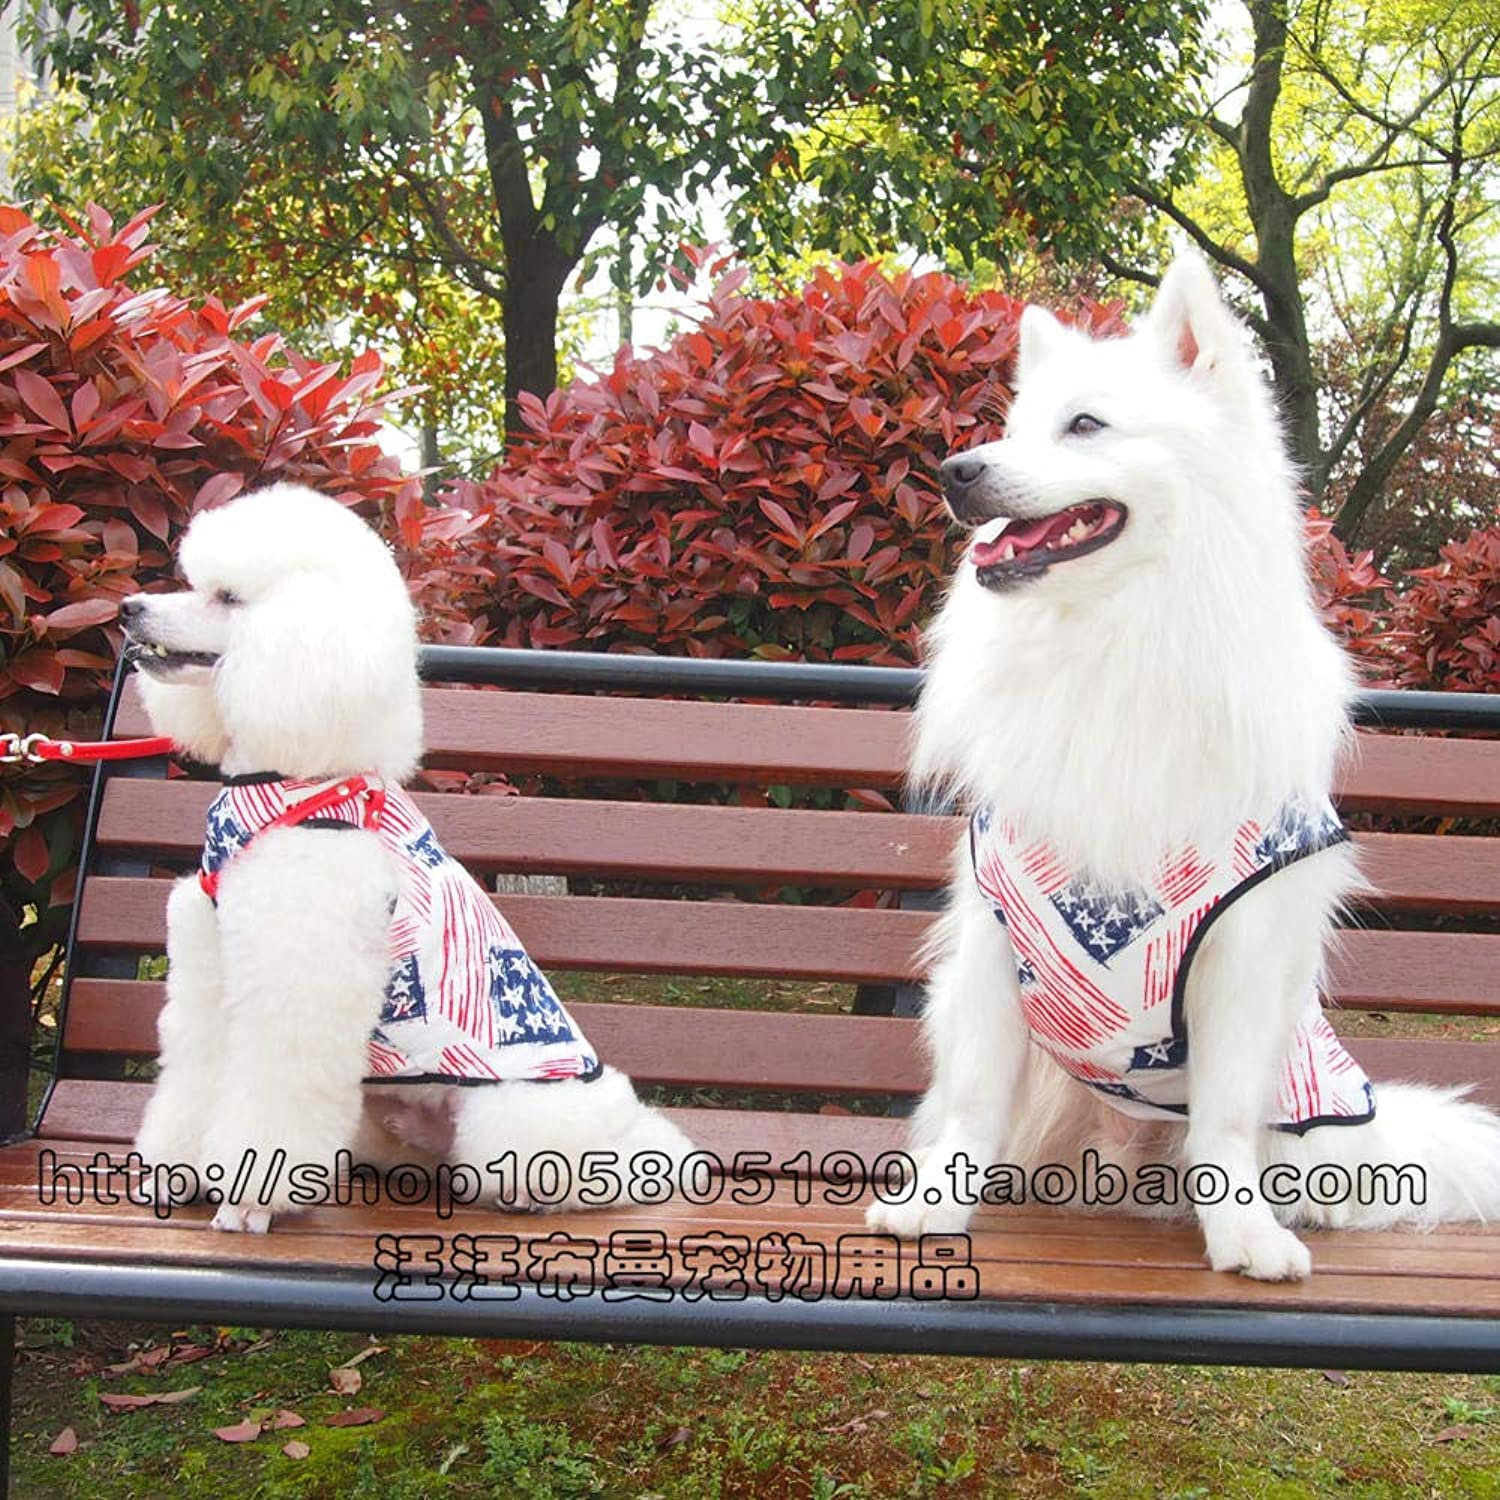 deportes calientes Medium-Tallad Dog Spring and Summer Pet Clothes Big Big Big Dog Samoyed Dog Vest Summer Dress Husky Vest